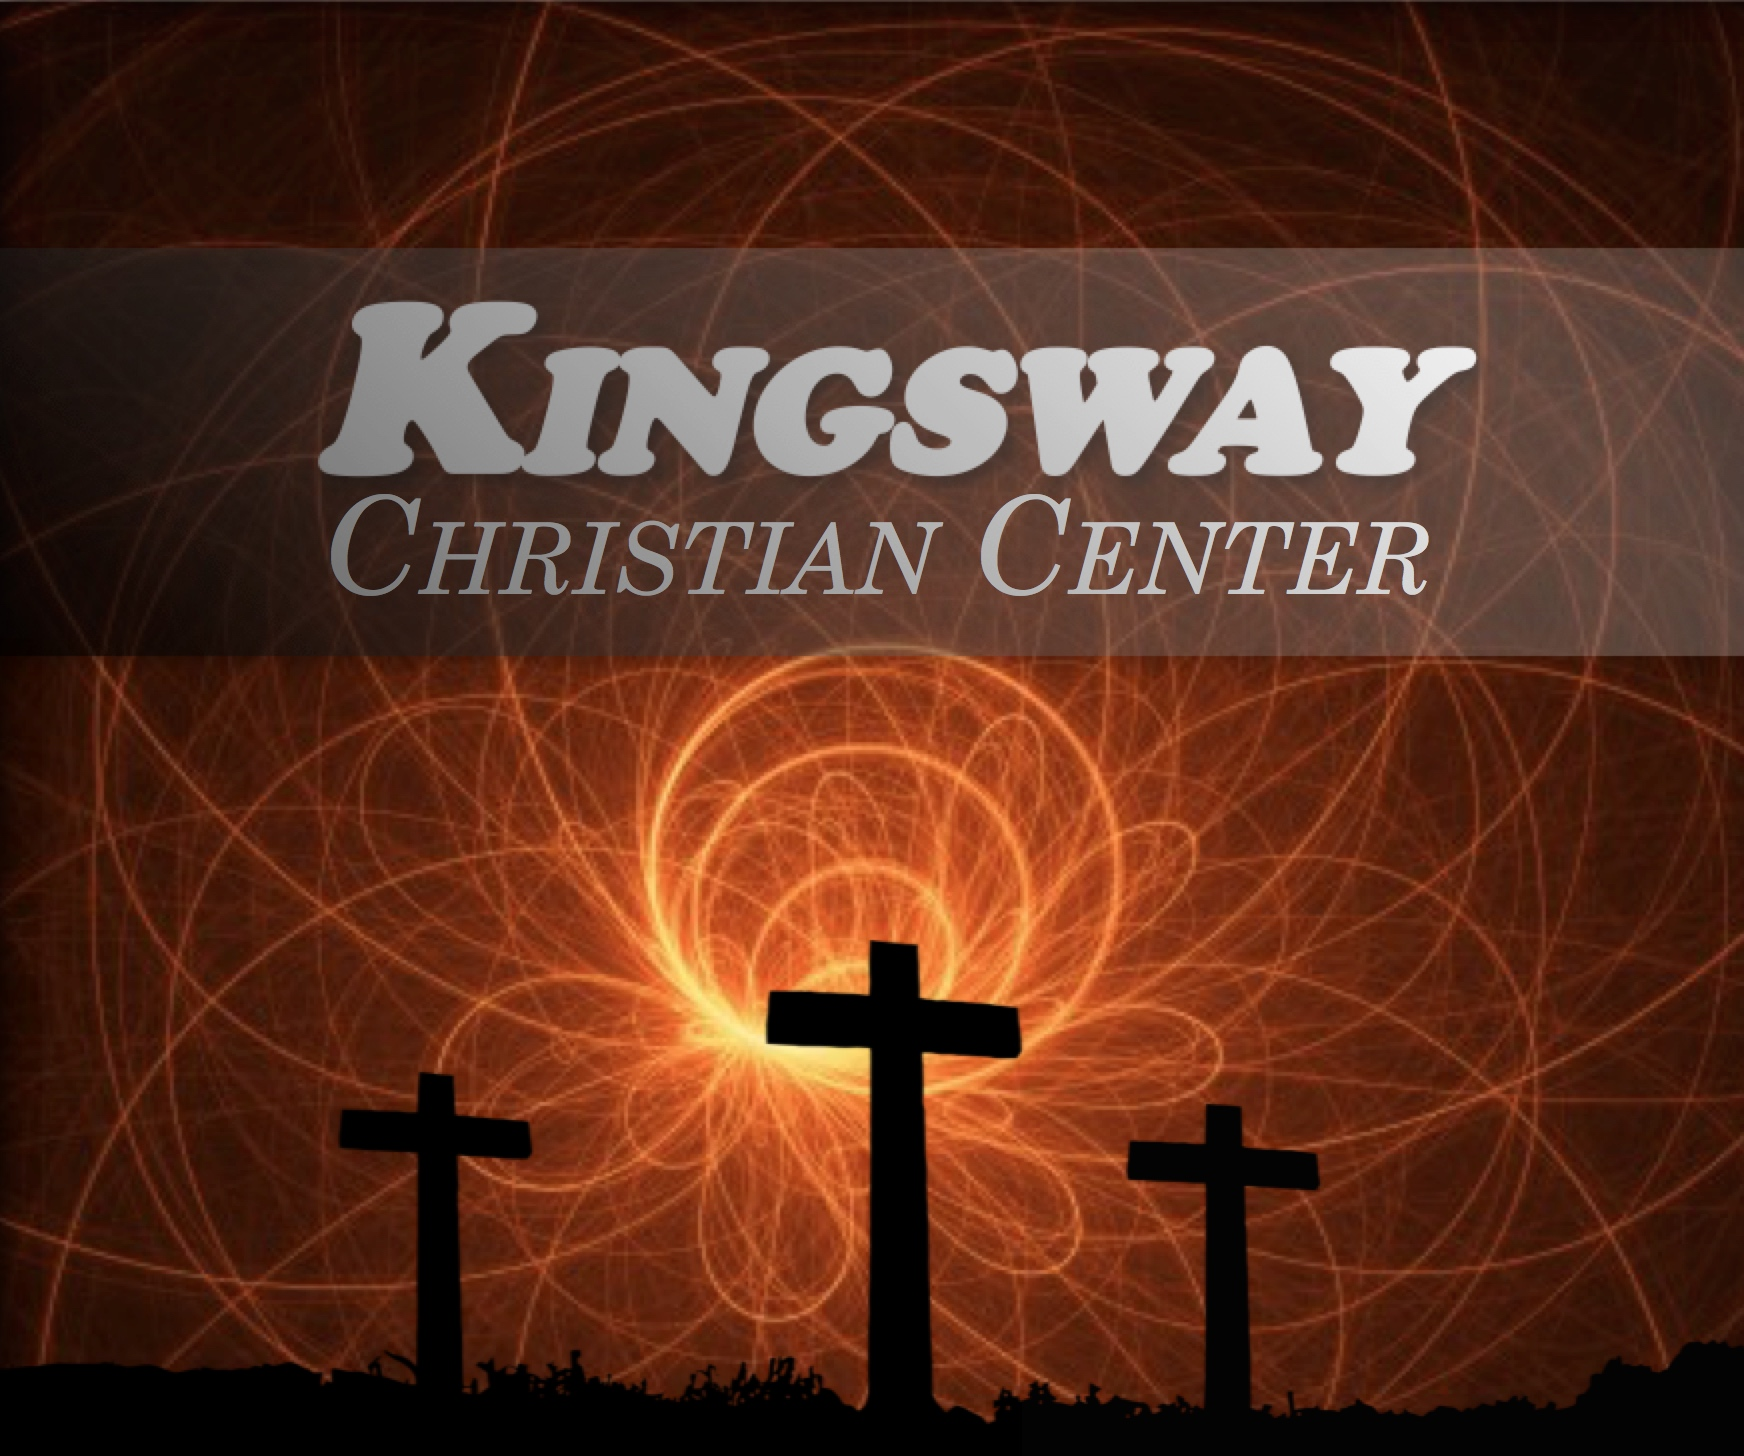 Kingsway Christian Center